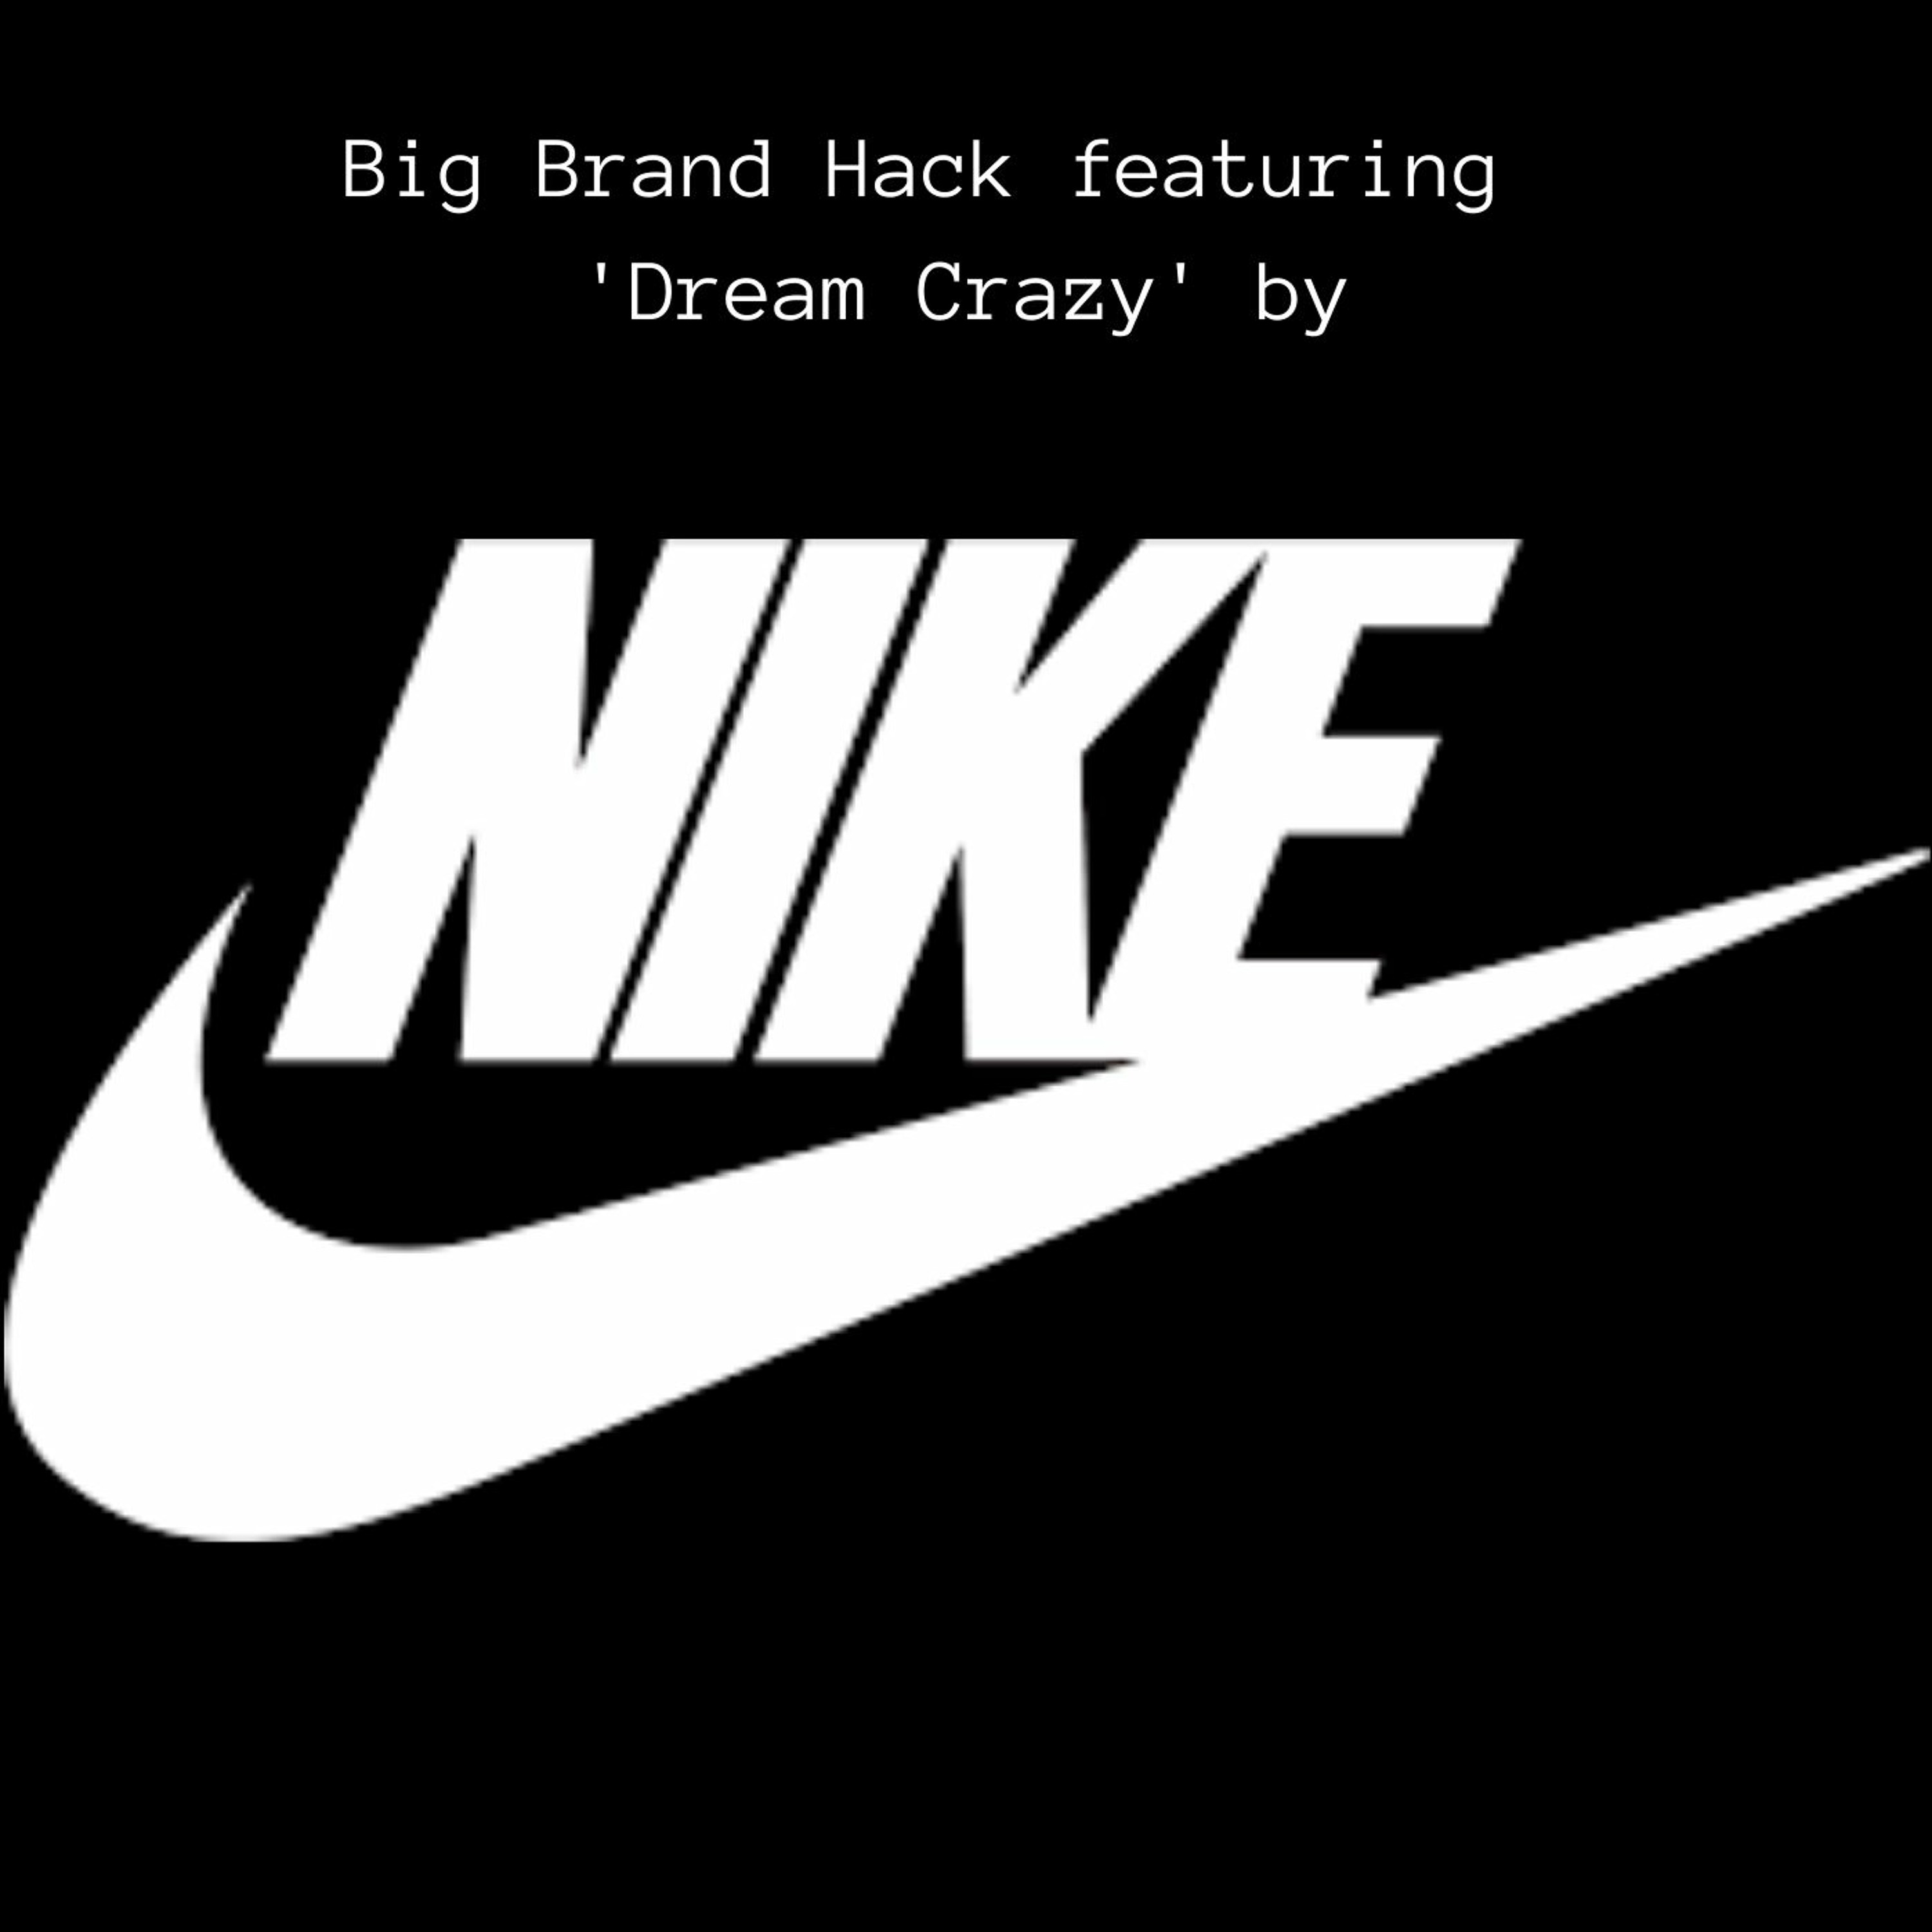 Episode Nike - How To Choose The Right Brand Ambassador